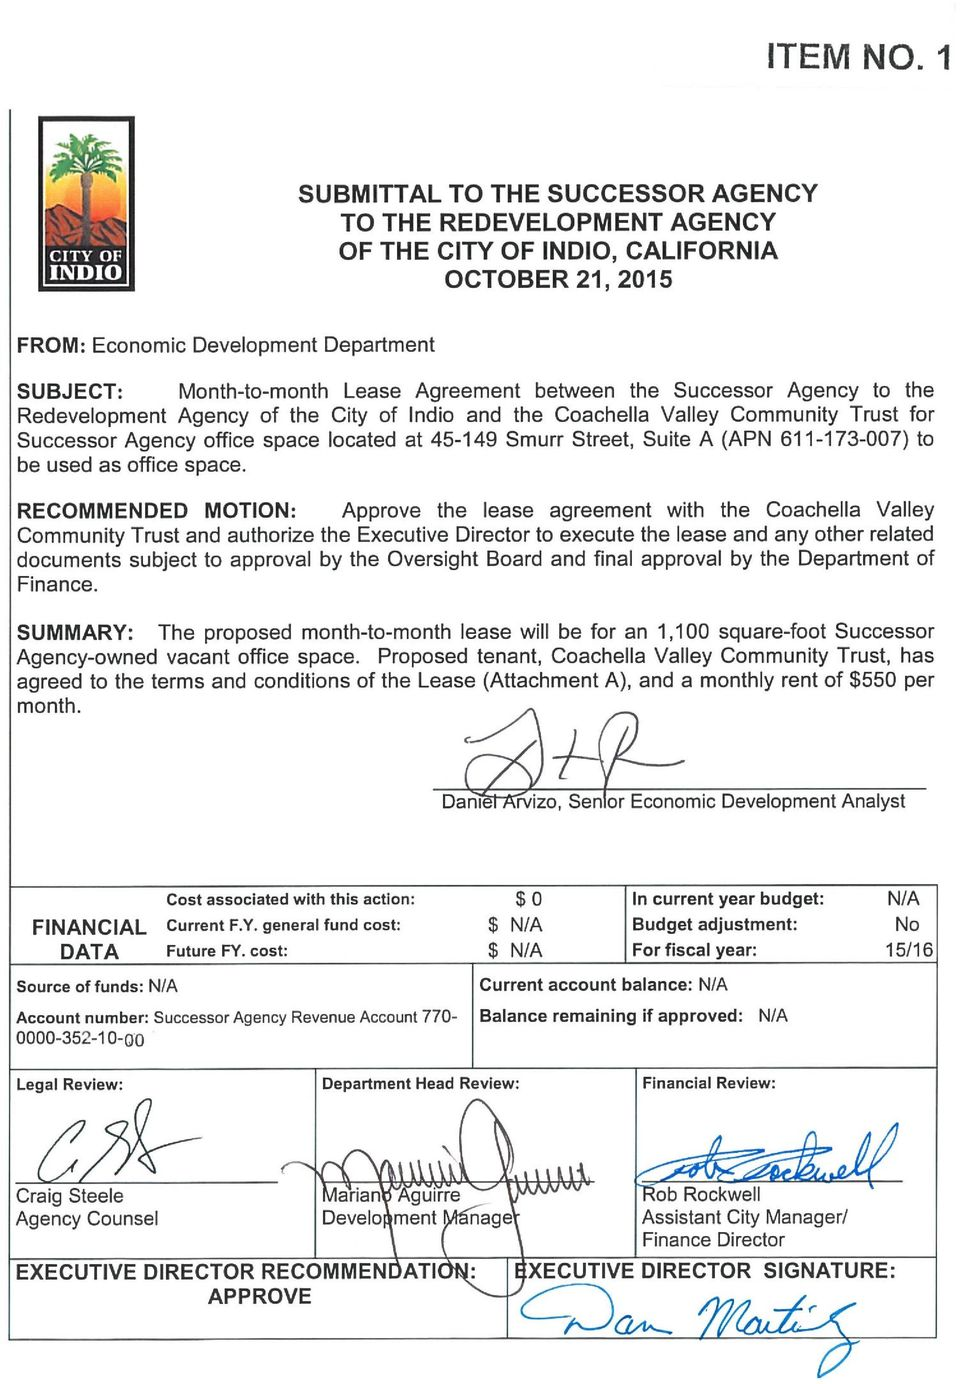 between the Successor Agency to the Redevelopment Agency of the City of Indio and the Coachella Valley Community Trust for Successor Agency office space located at 45-149 Smurr Street, Suite A ( APN